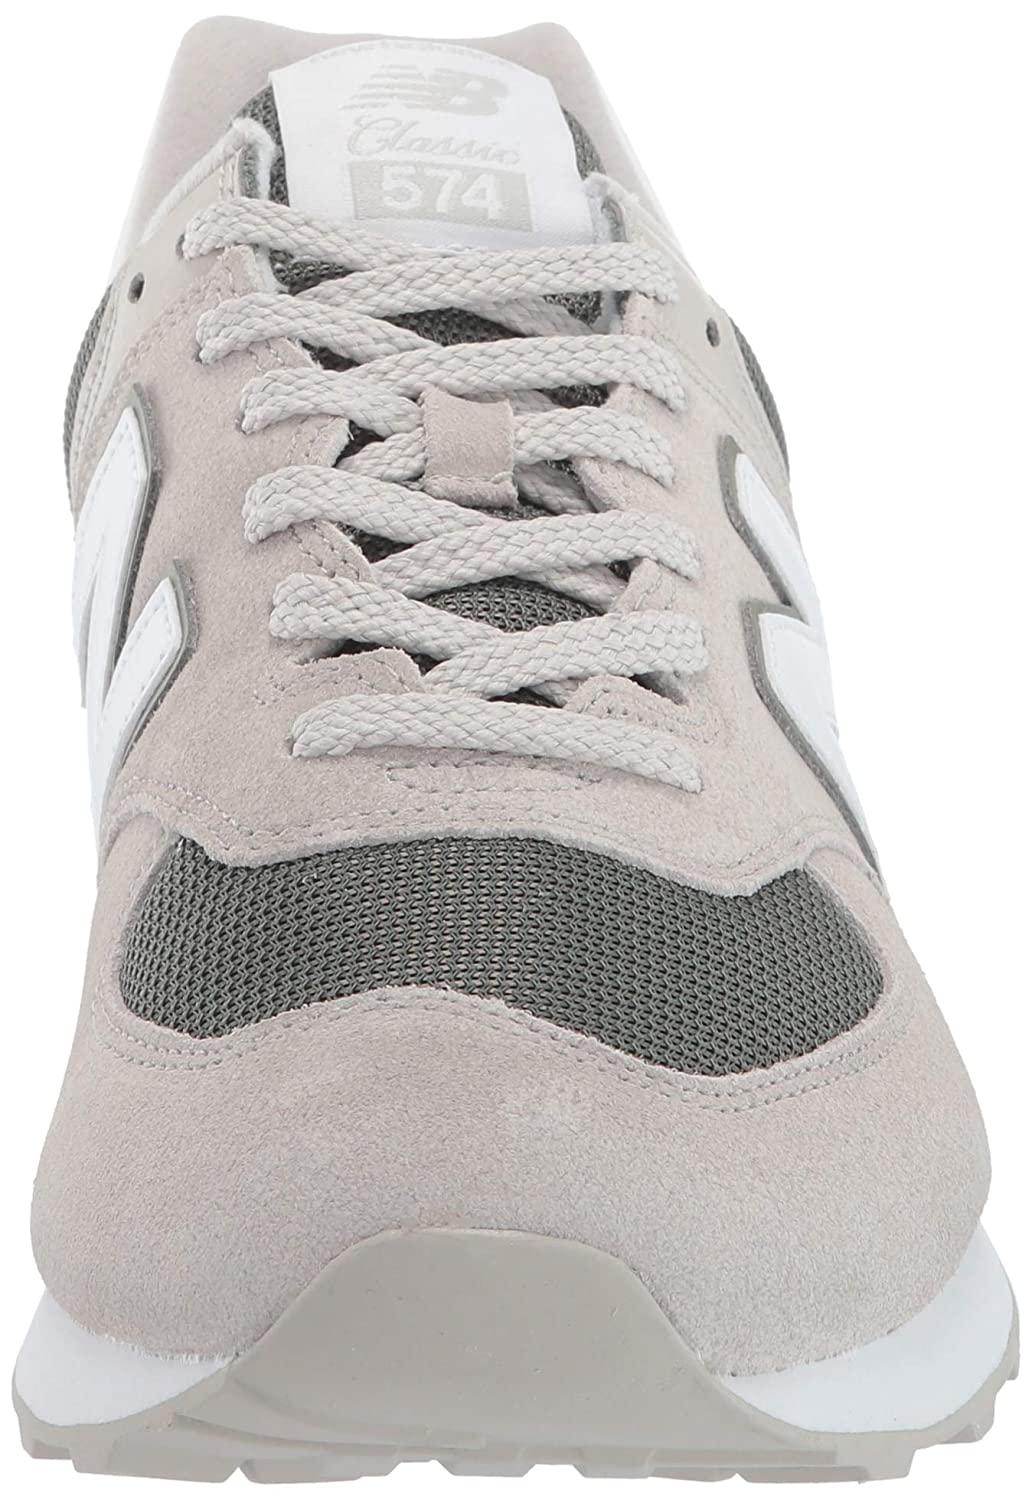 New Balance Herren 574v2 Sneaker Light Cliff Grey/Mineral Green